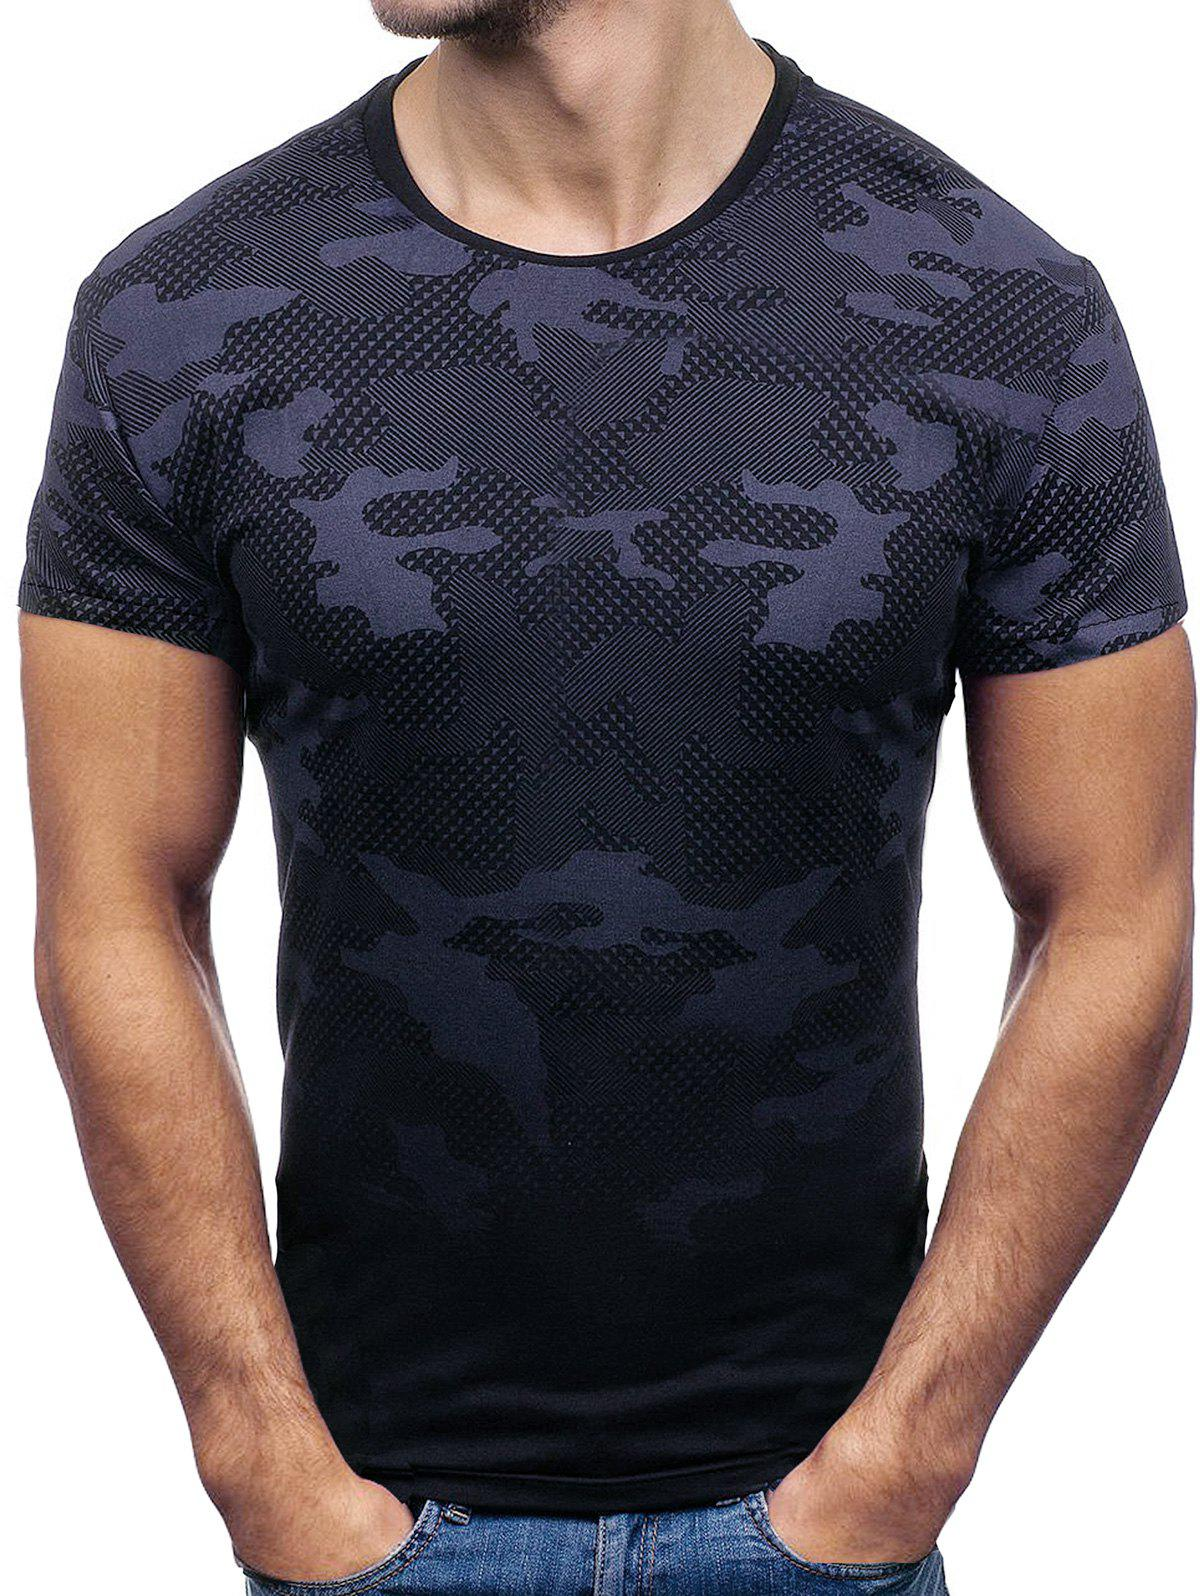 Latest Short Sleeves Camouflage Print T-shirt